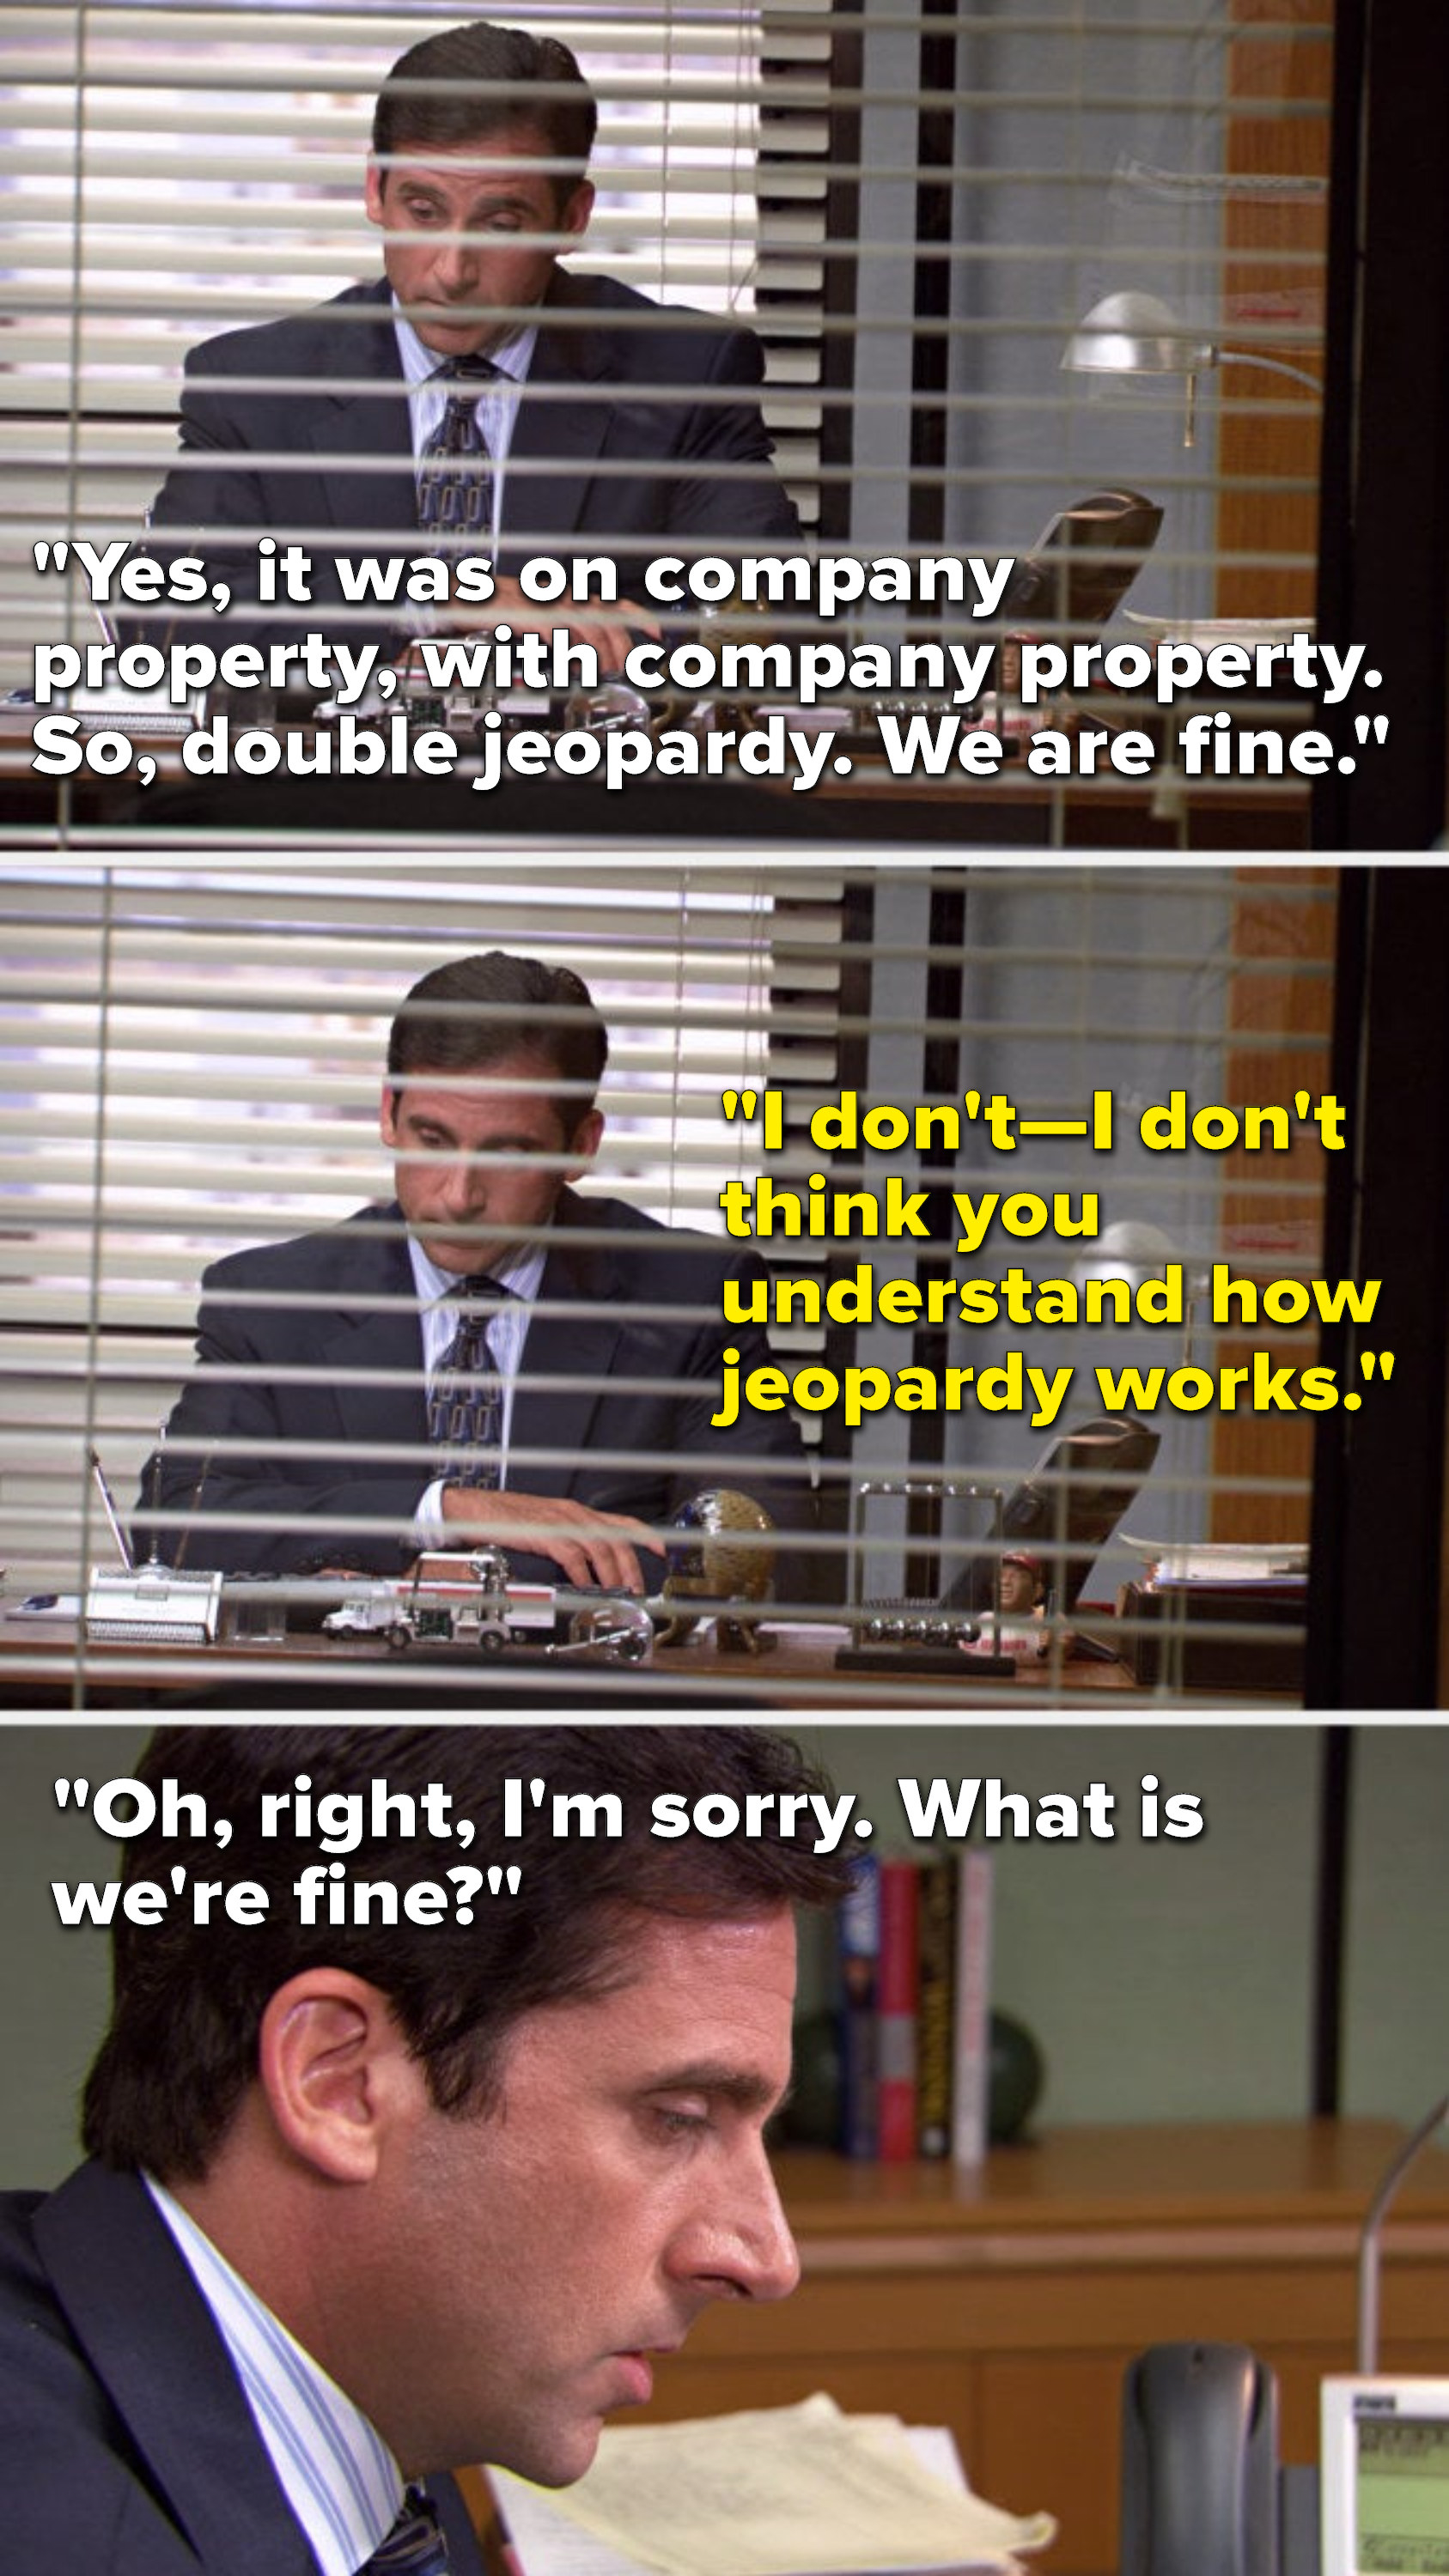 """Michael says, """"Yes, it was on company property, with company property, so, double jeopardy, we are fine,"""" Ryan says, """"I don't—I don't think you understand how Jeopardy works,"""" and Michael says, """"Oh, right, I'm sorry, what is we're fine"""""""